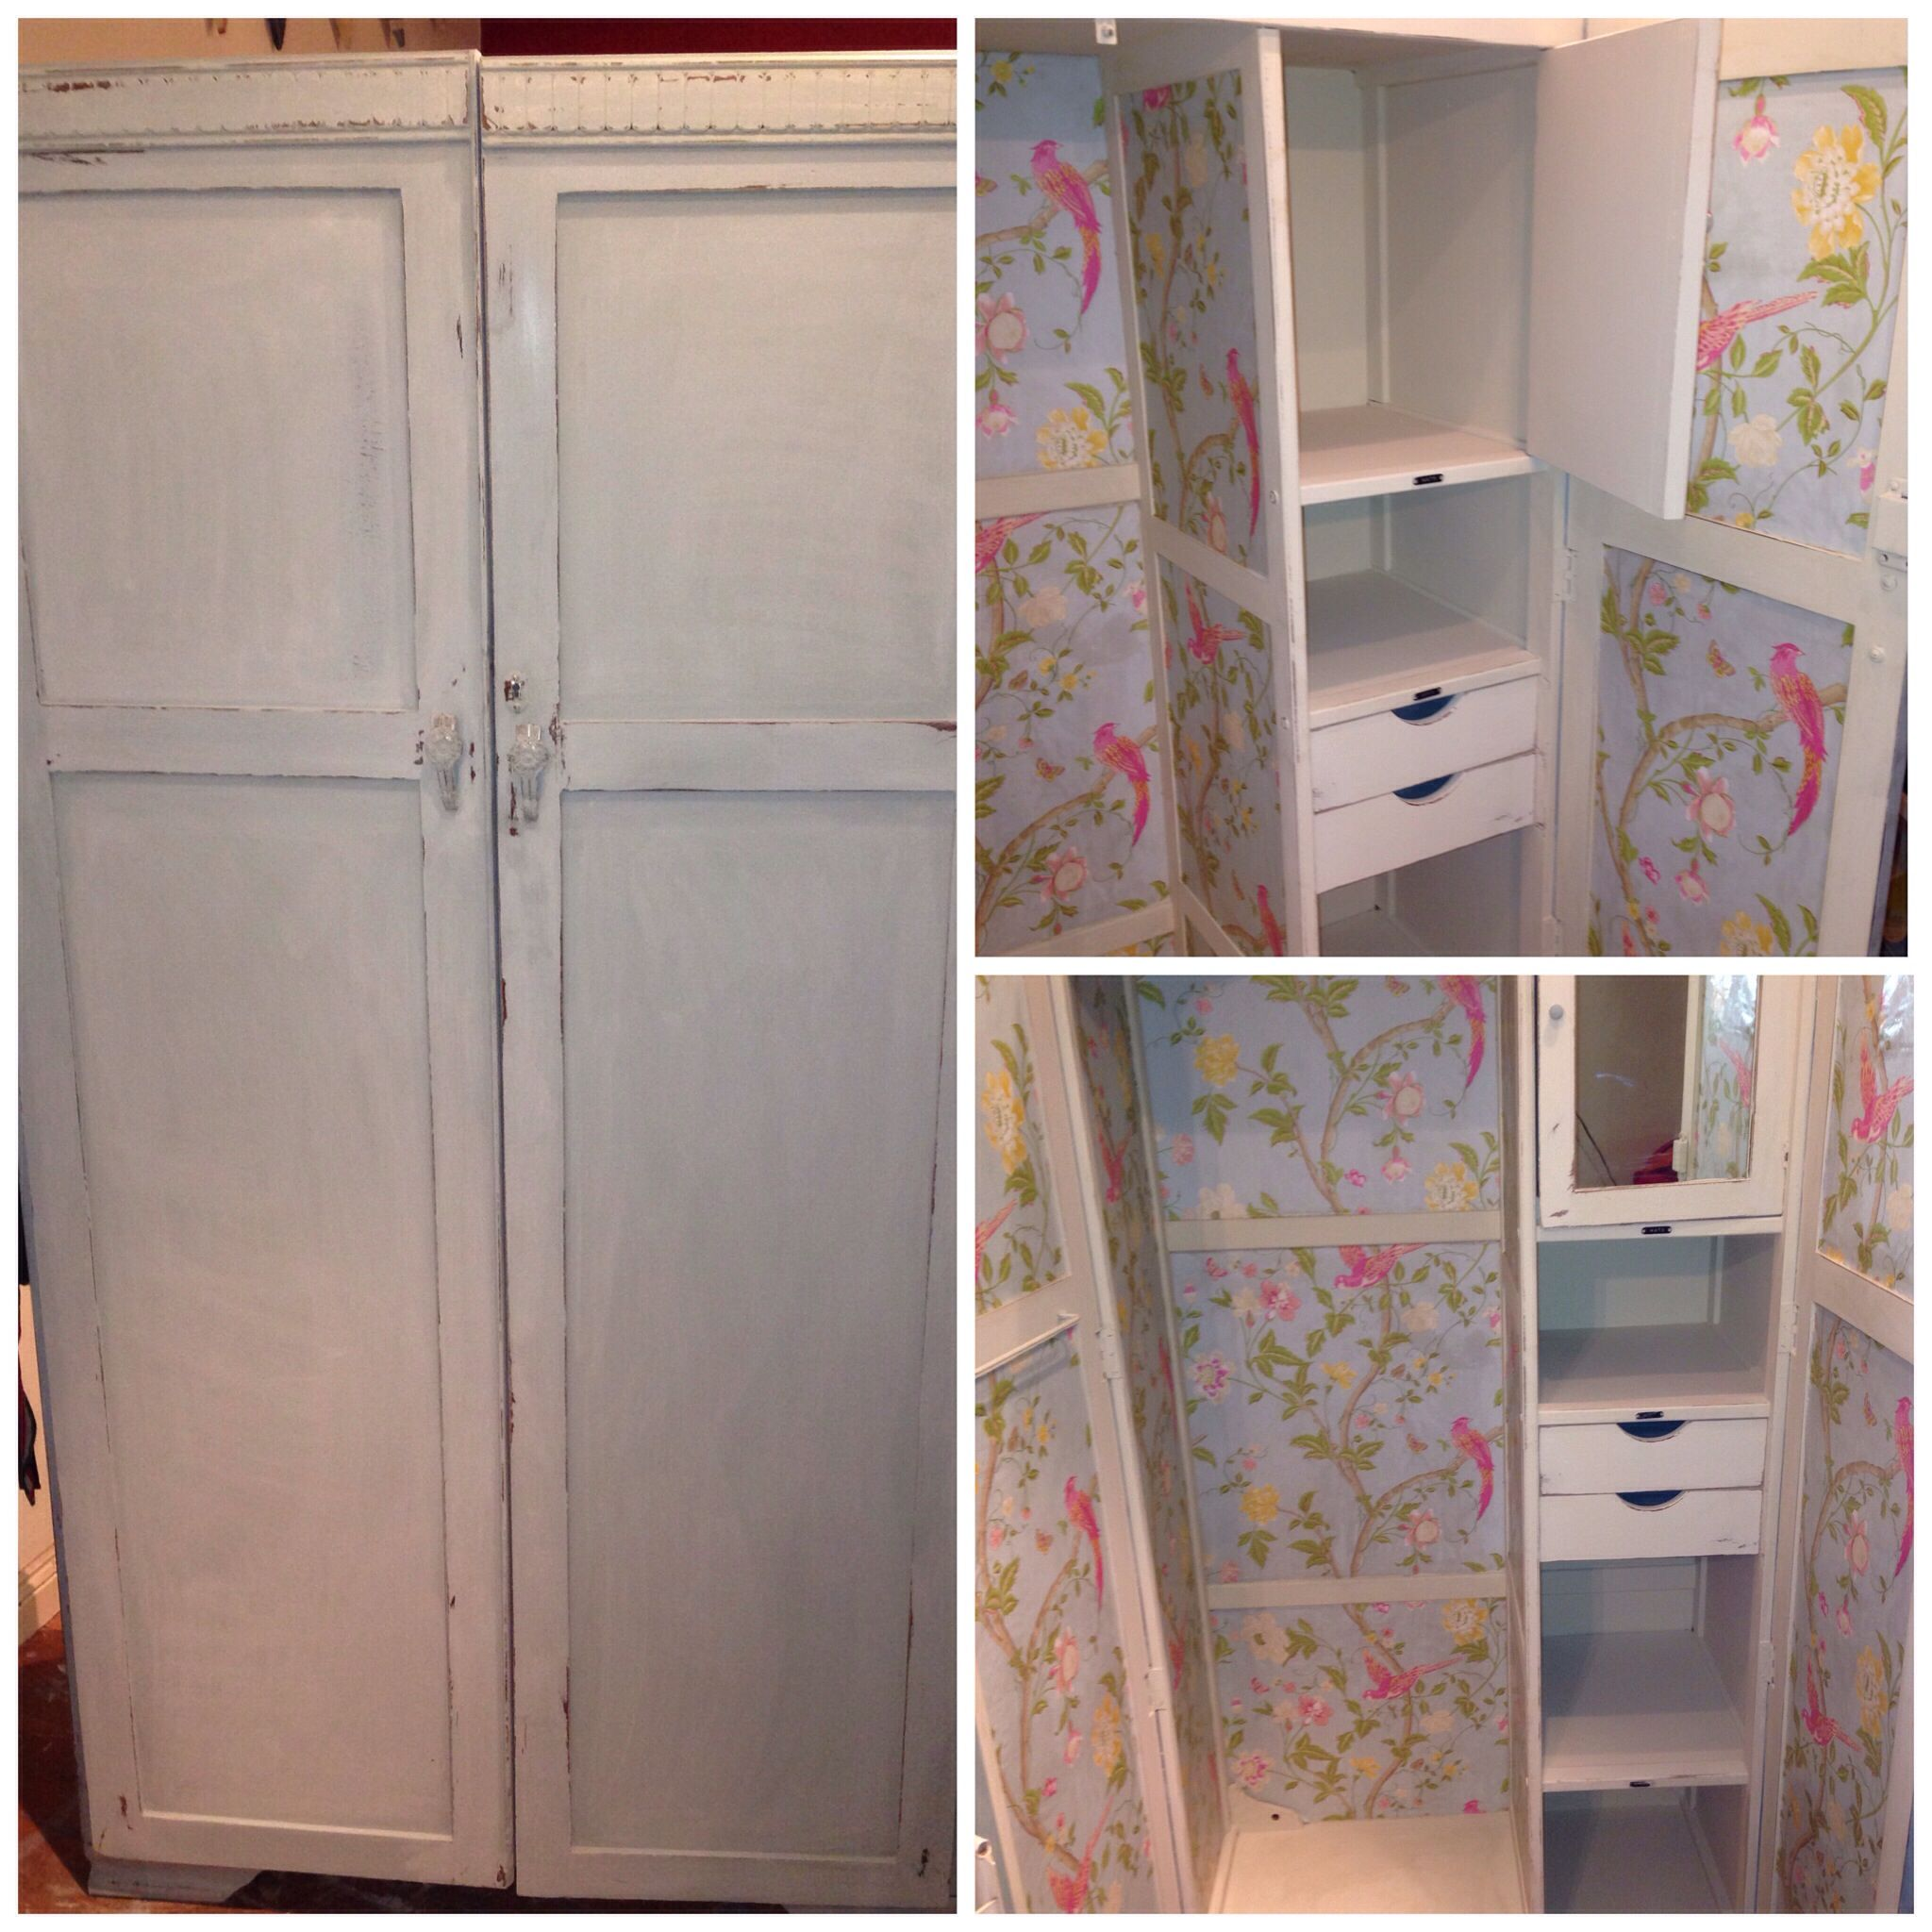 Vintage wardrobe given the feminine touch home decor that i love